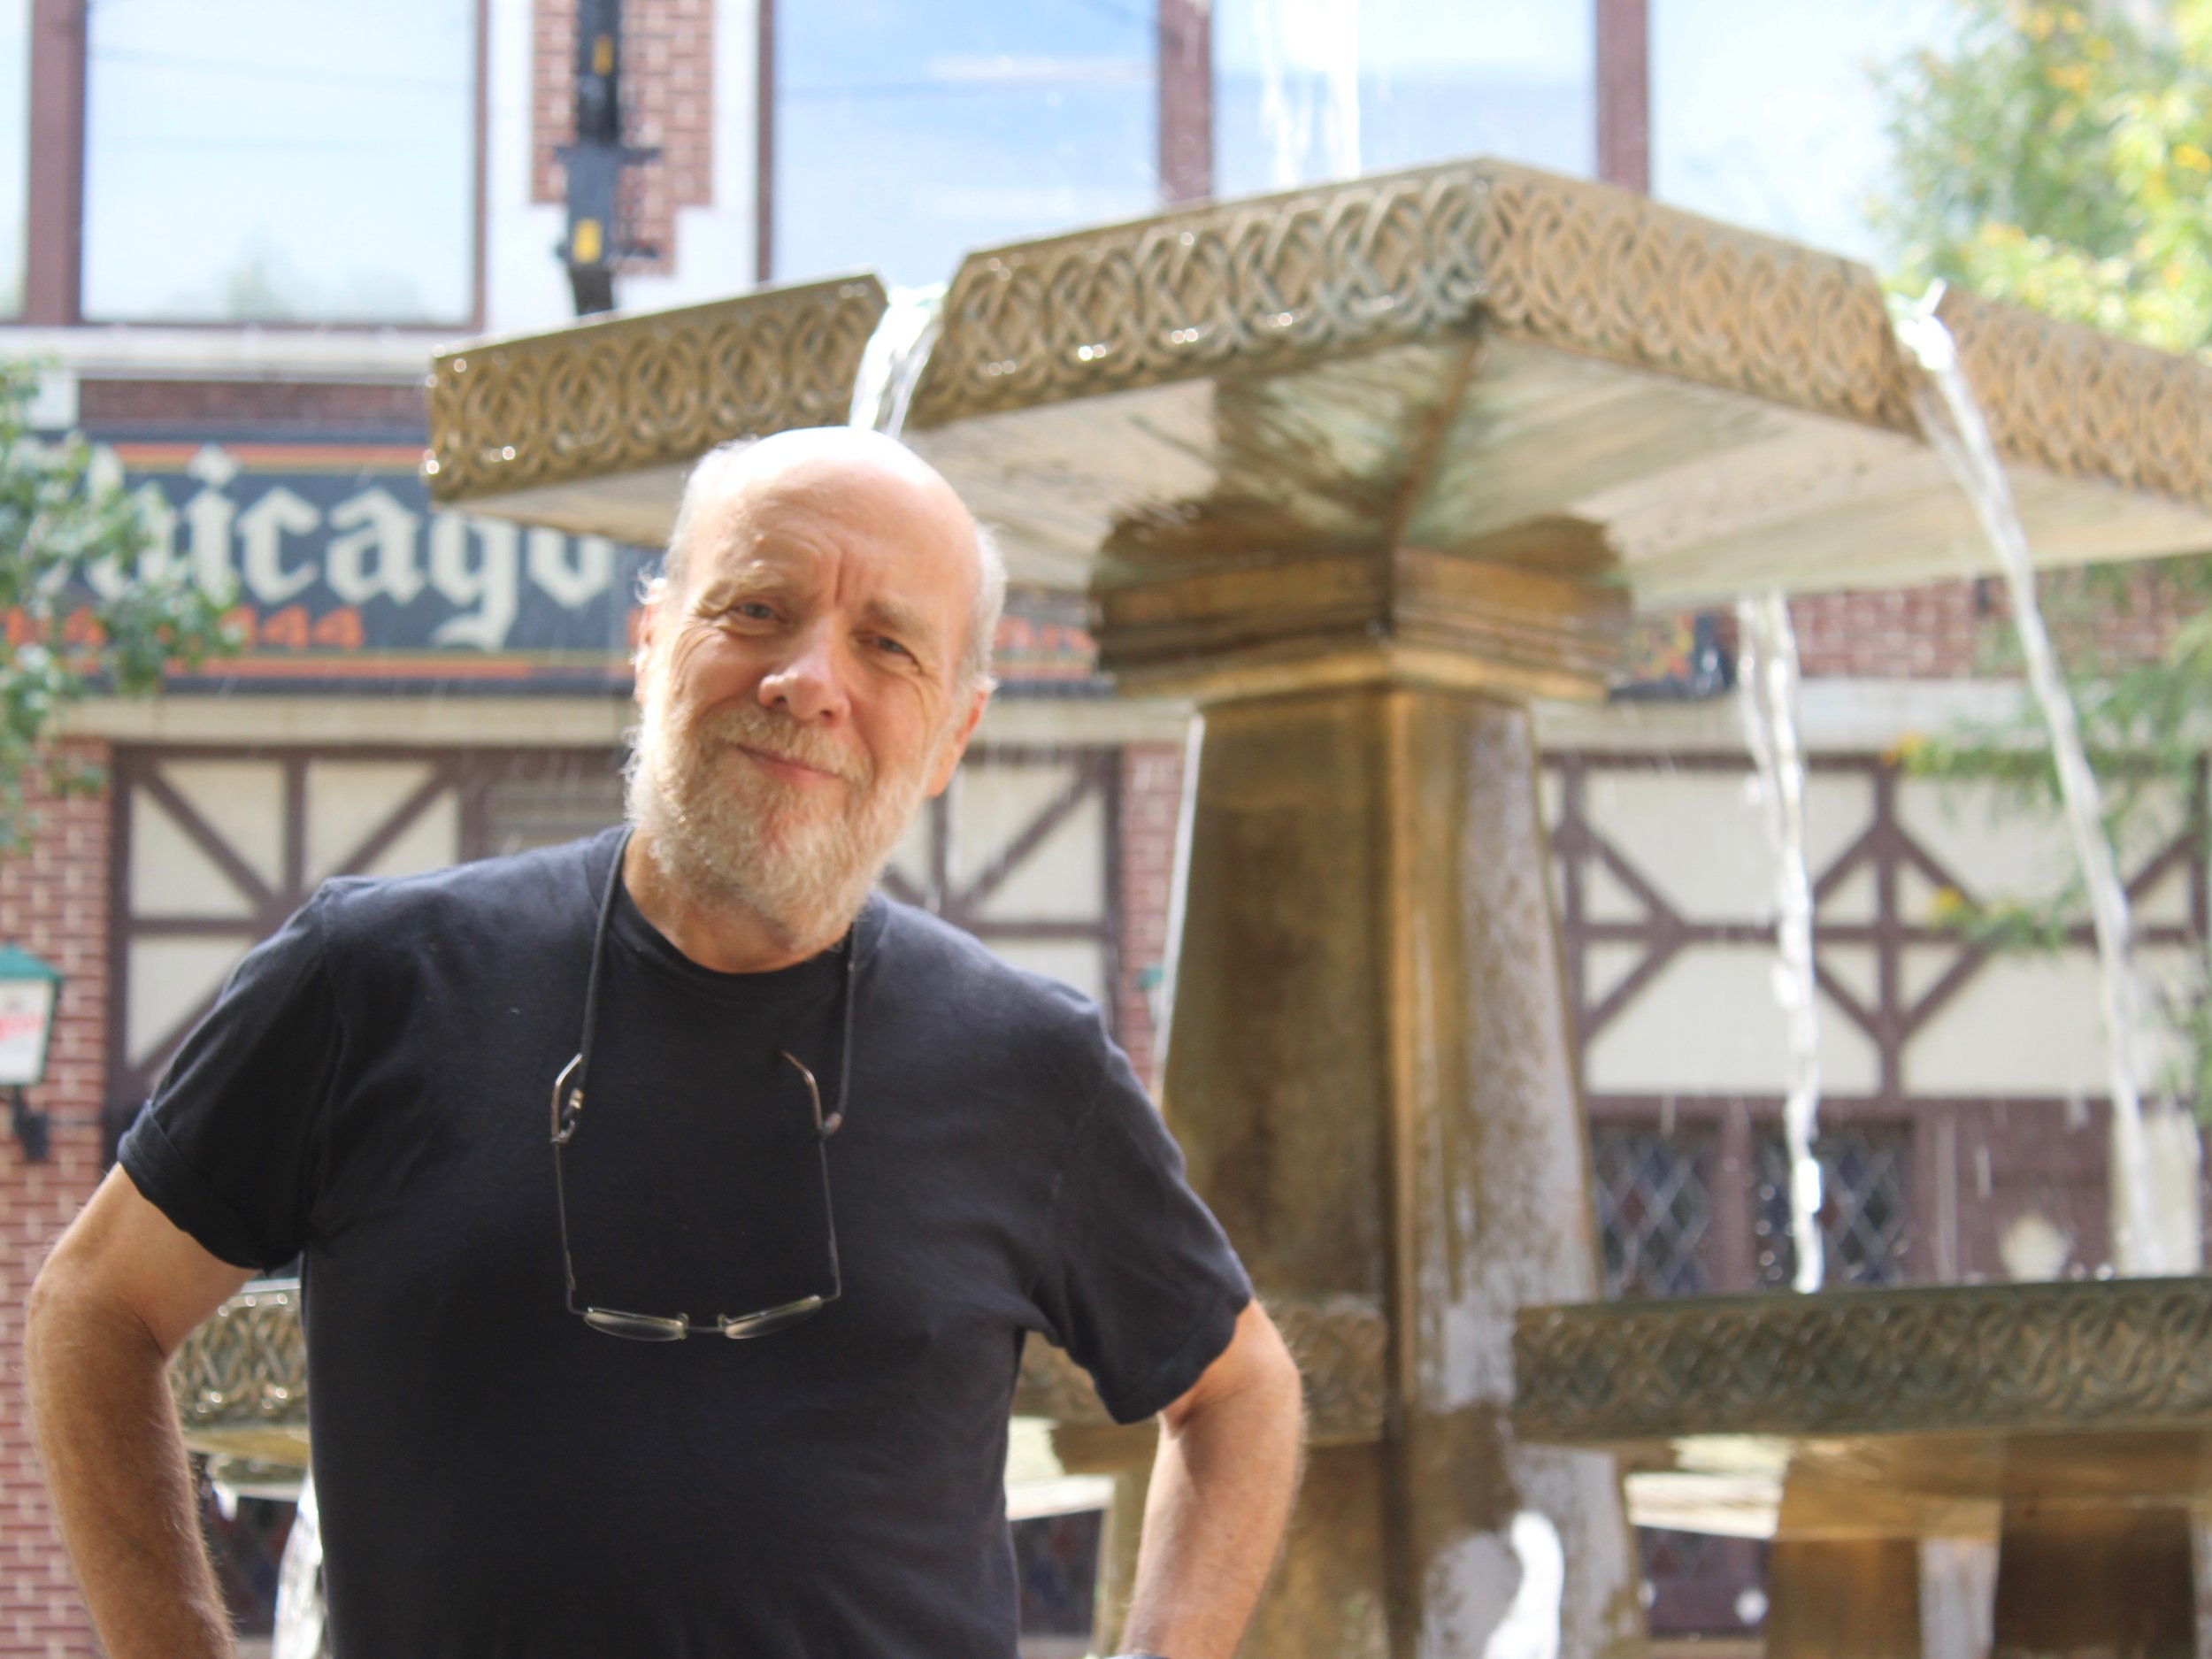 Mike Lenehan of Blue Beginning stands in front of the public fountain in Chicago's Lincoln Square. (One Illinois/Ted Cox)